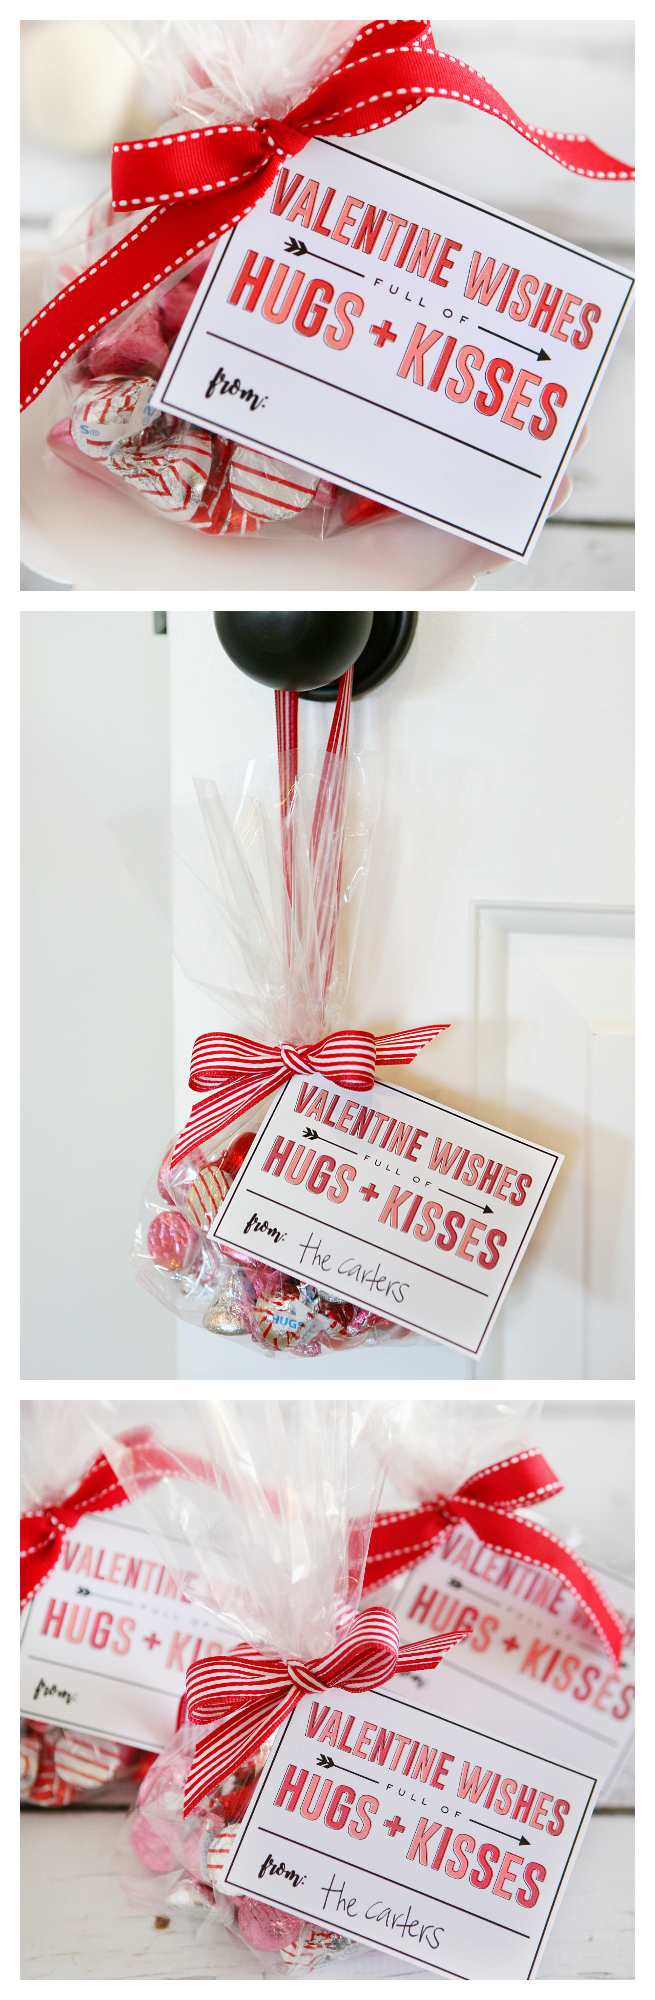 Valentine Wishes Full of Hugs and Kisses | Valentine Gift Idea with free printable gift tag